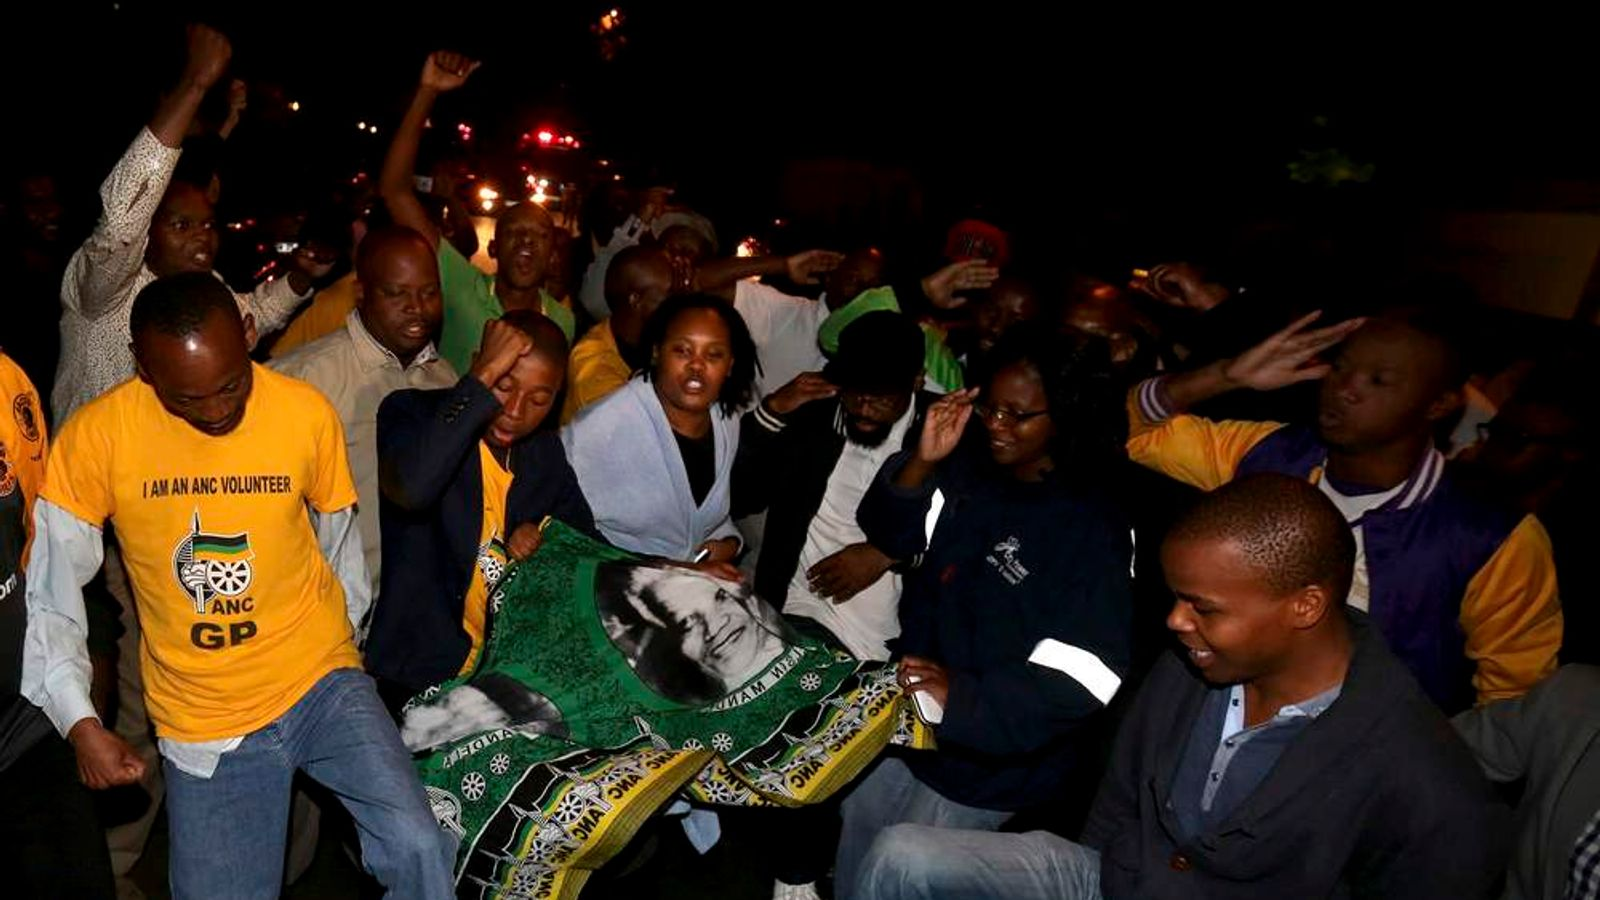 People chant slogans outside the house of former South African President Mandela after news of his death in Houghton